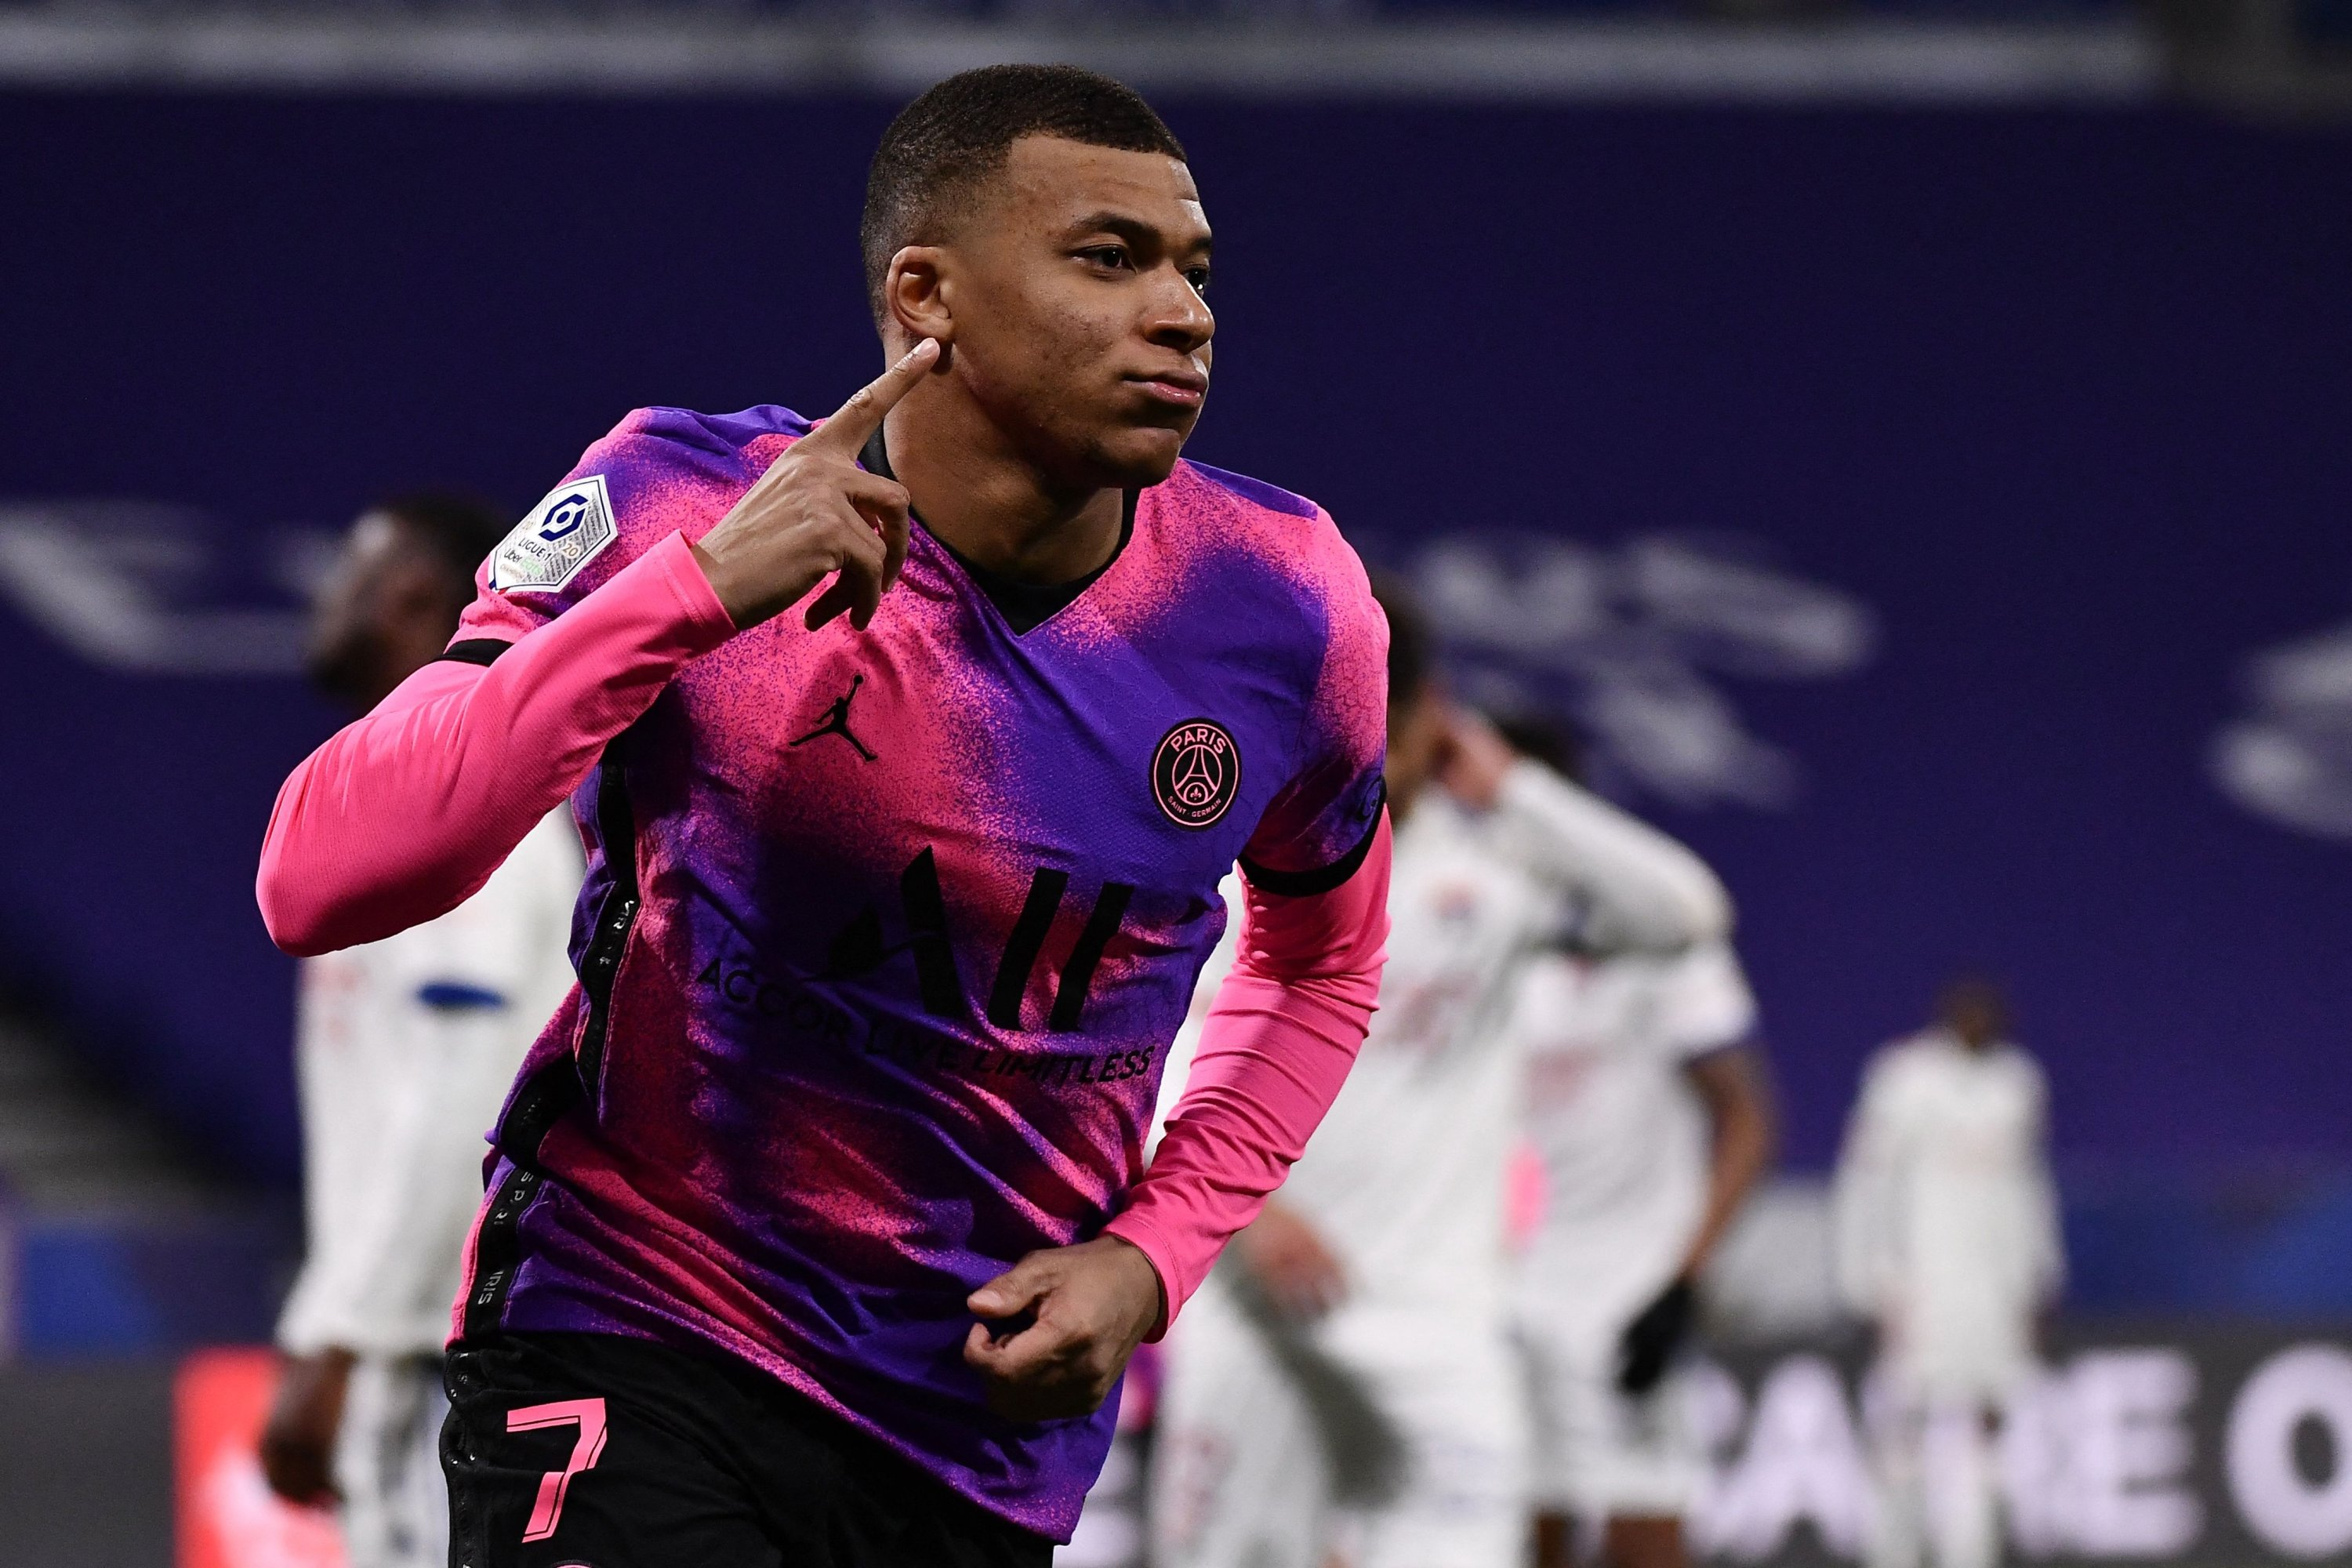 Mbappe Touches 100 Goal Milestone As Psg Beats Lyon To Go Top Daily Sabah